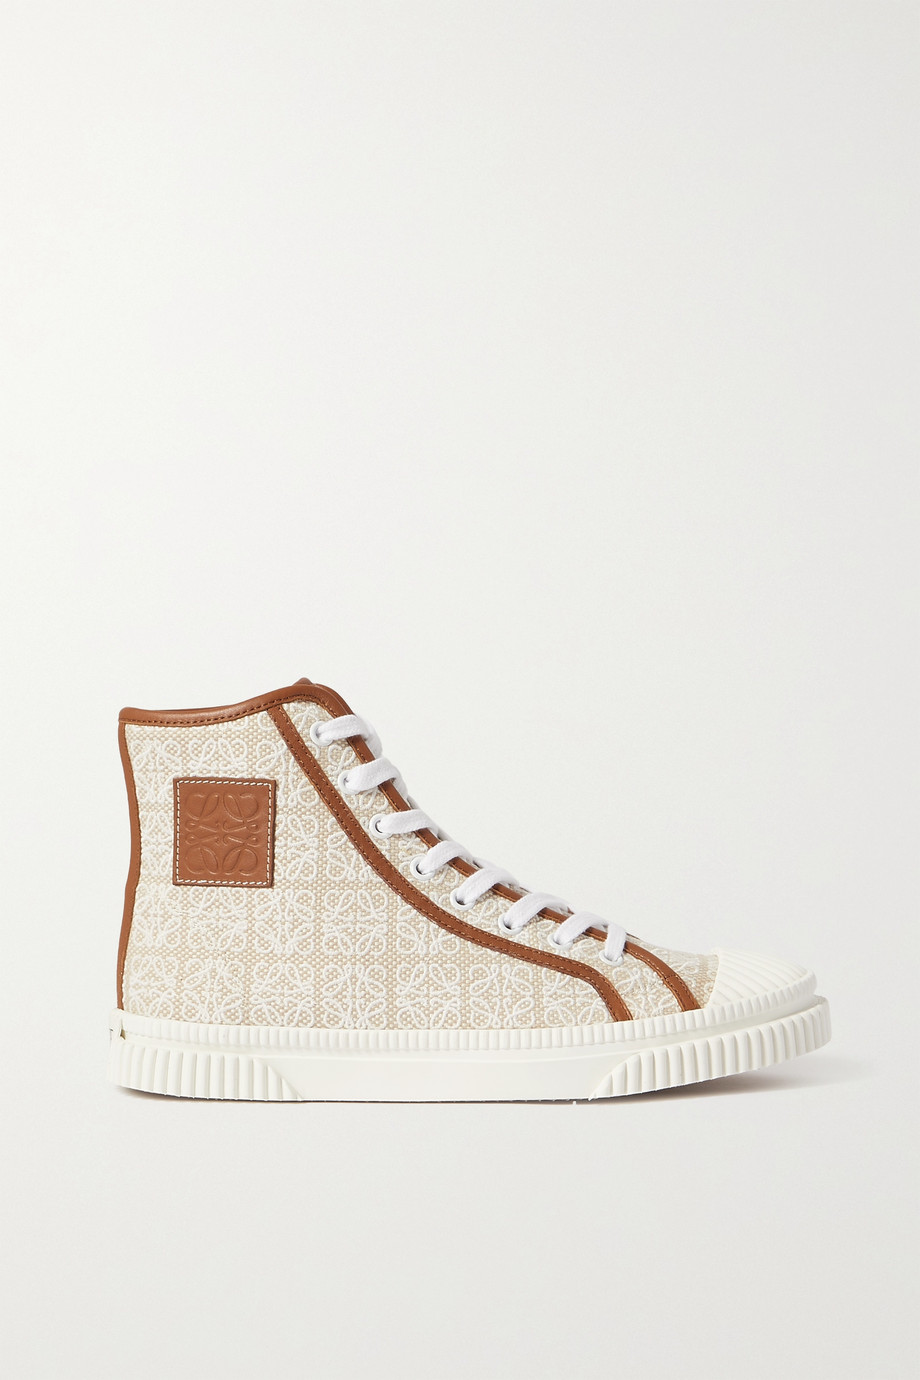 Loewe Leather-trimmed jacquard high-top sneakers